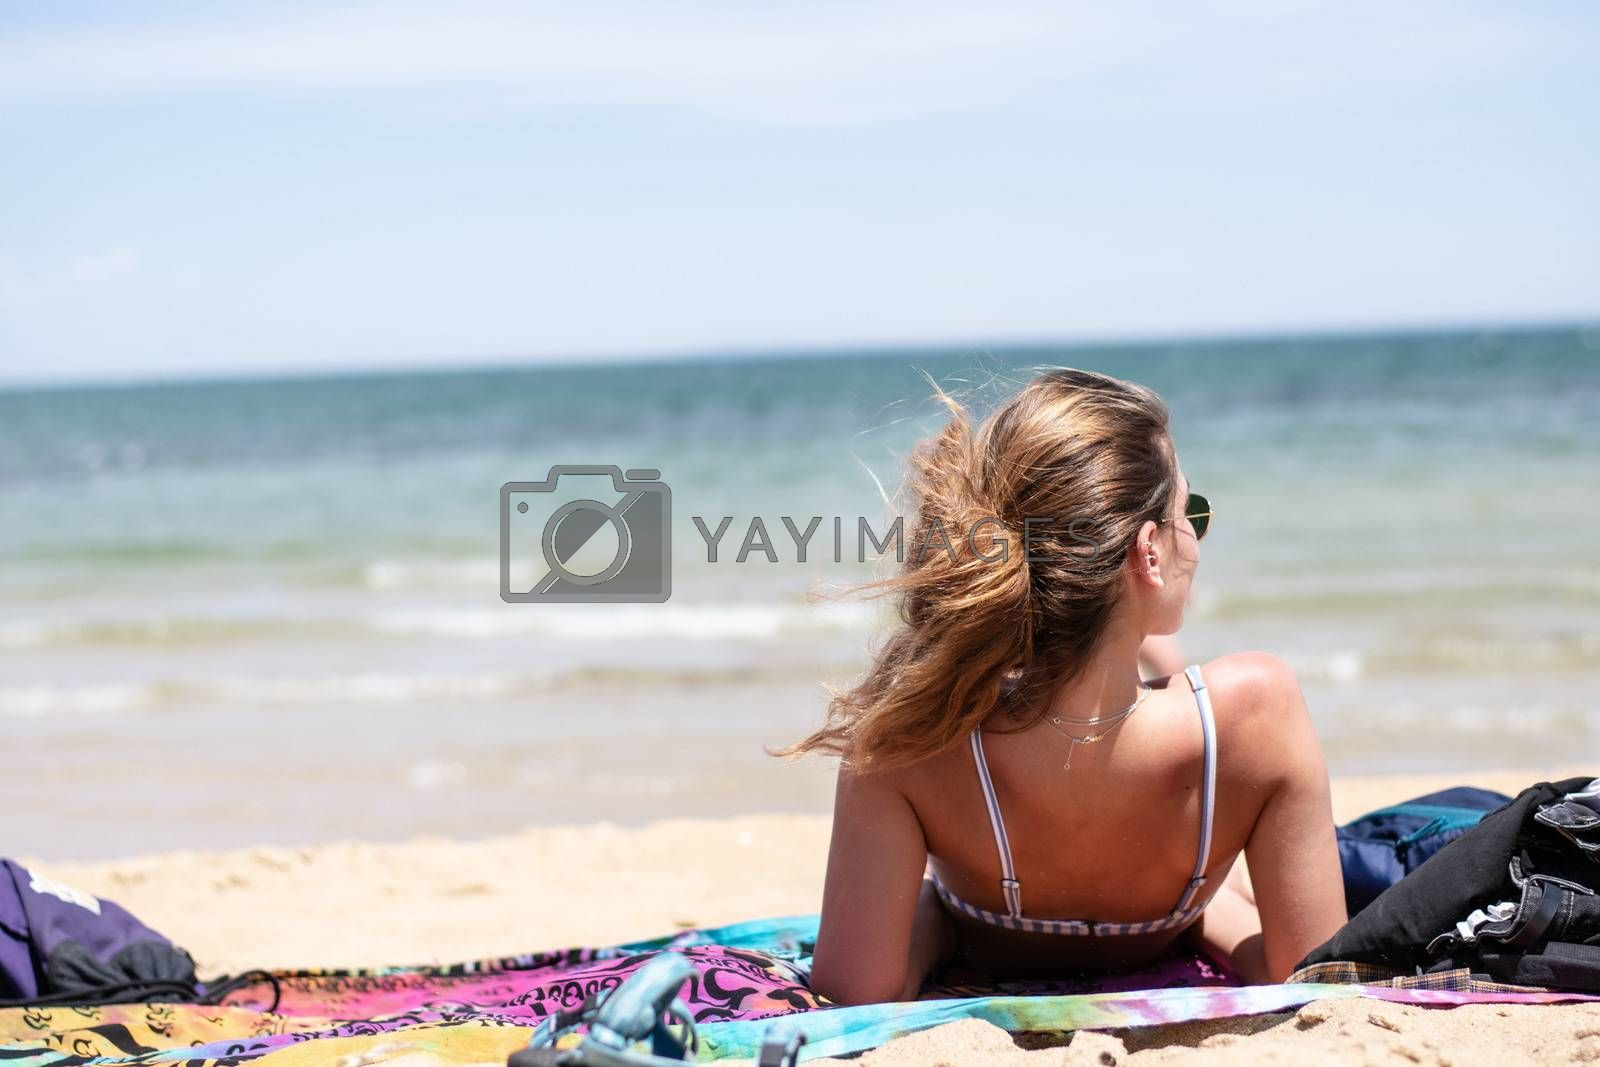 Girl laying on beach towel in sunlight on summer day